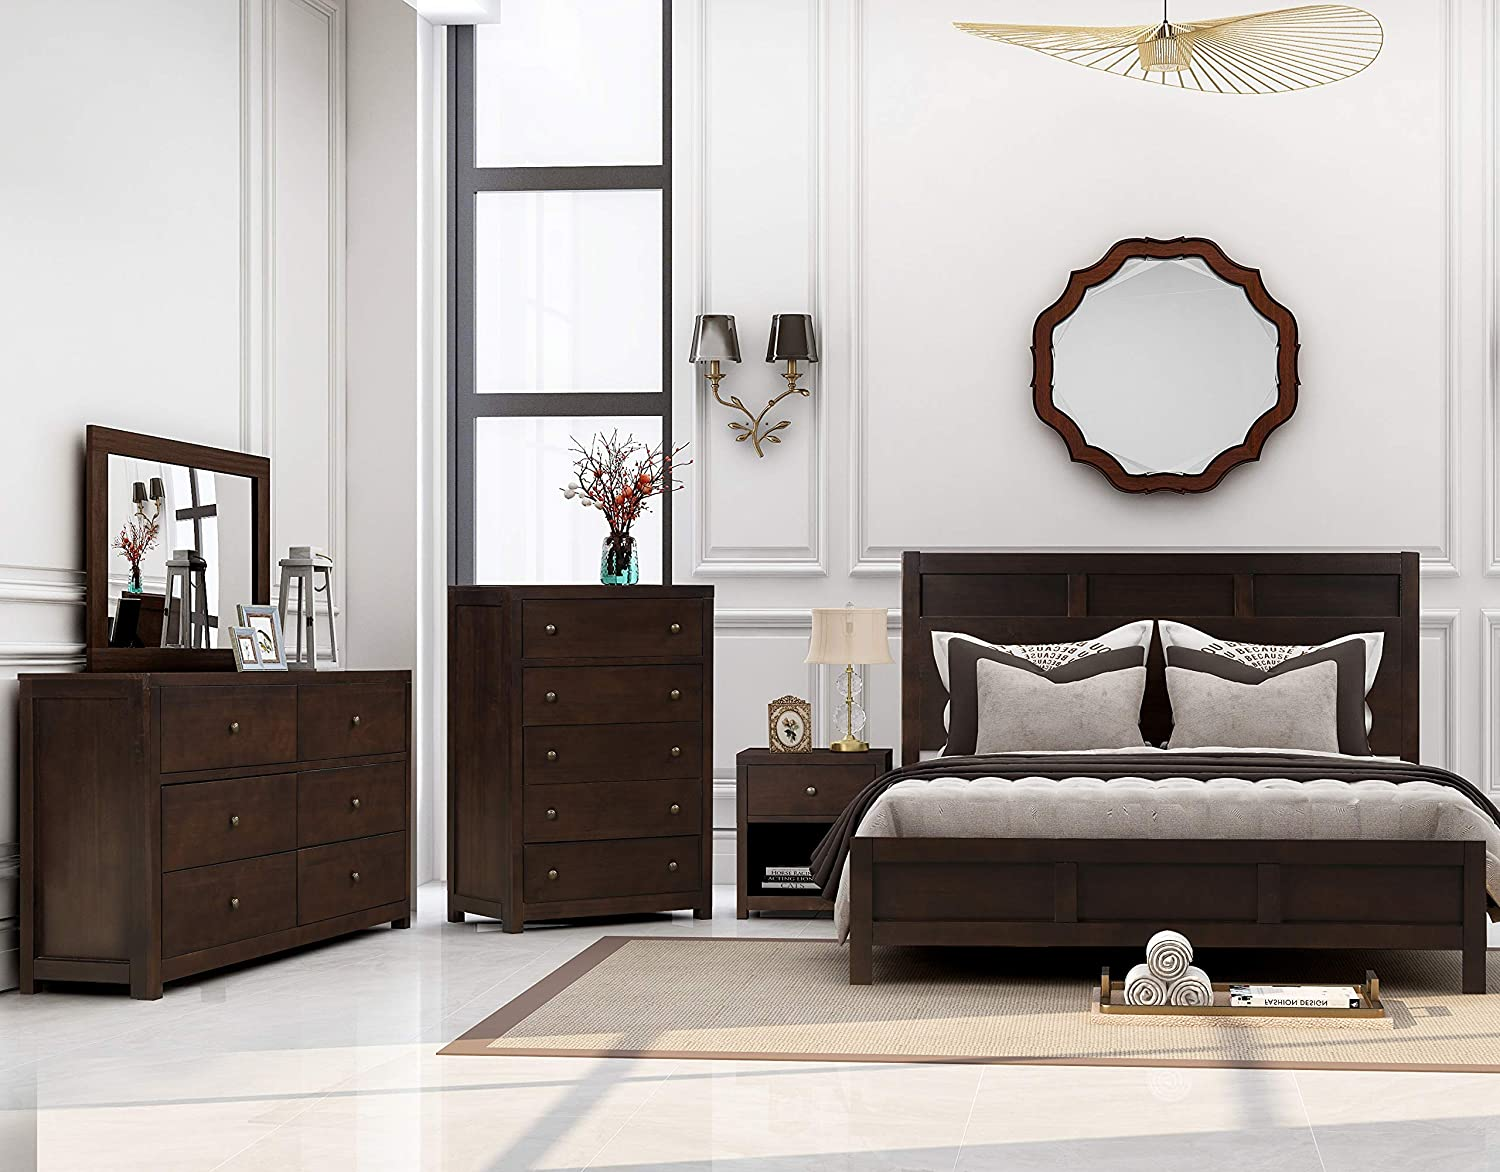 Amazon Com Softsea 6 Pieces King Bedroom Furniture Set Philippe Style Matching King Bed Dresser 5 Drawer Chest Mirror 2 Nightstands Wood King Size Furniture Decor